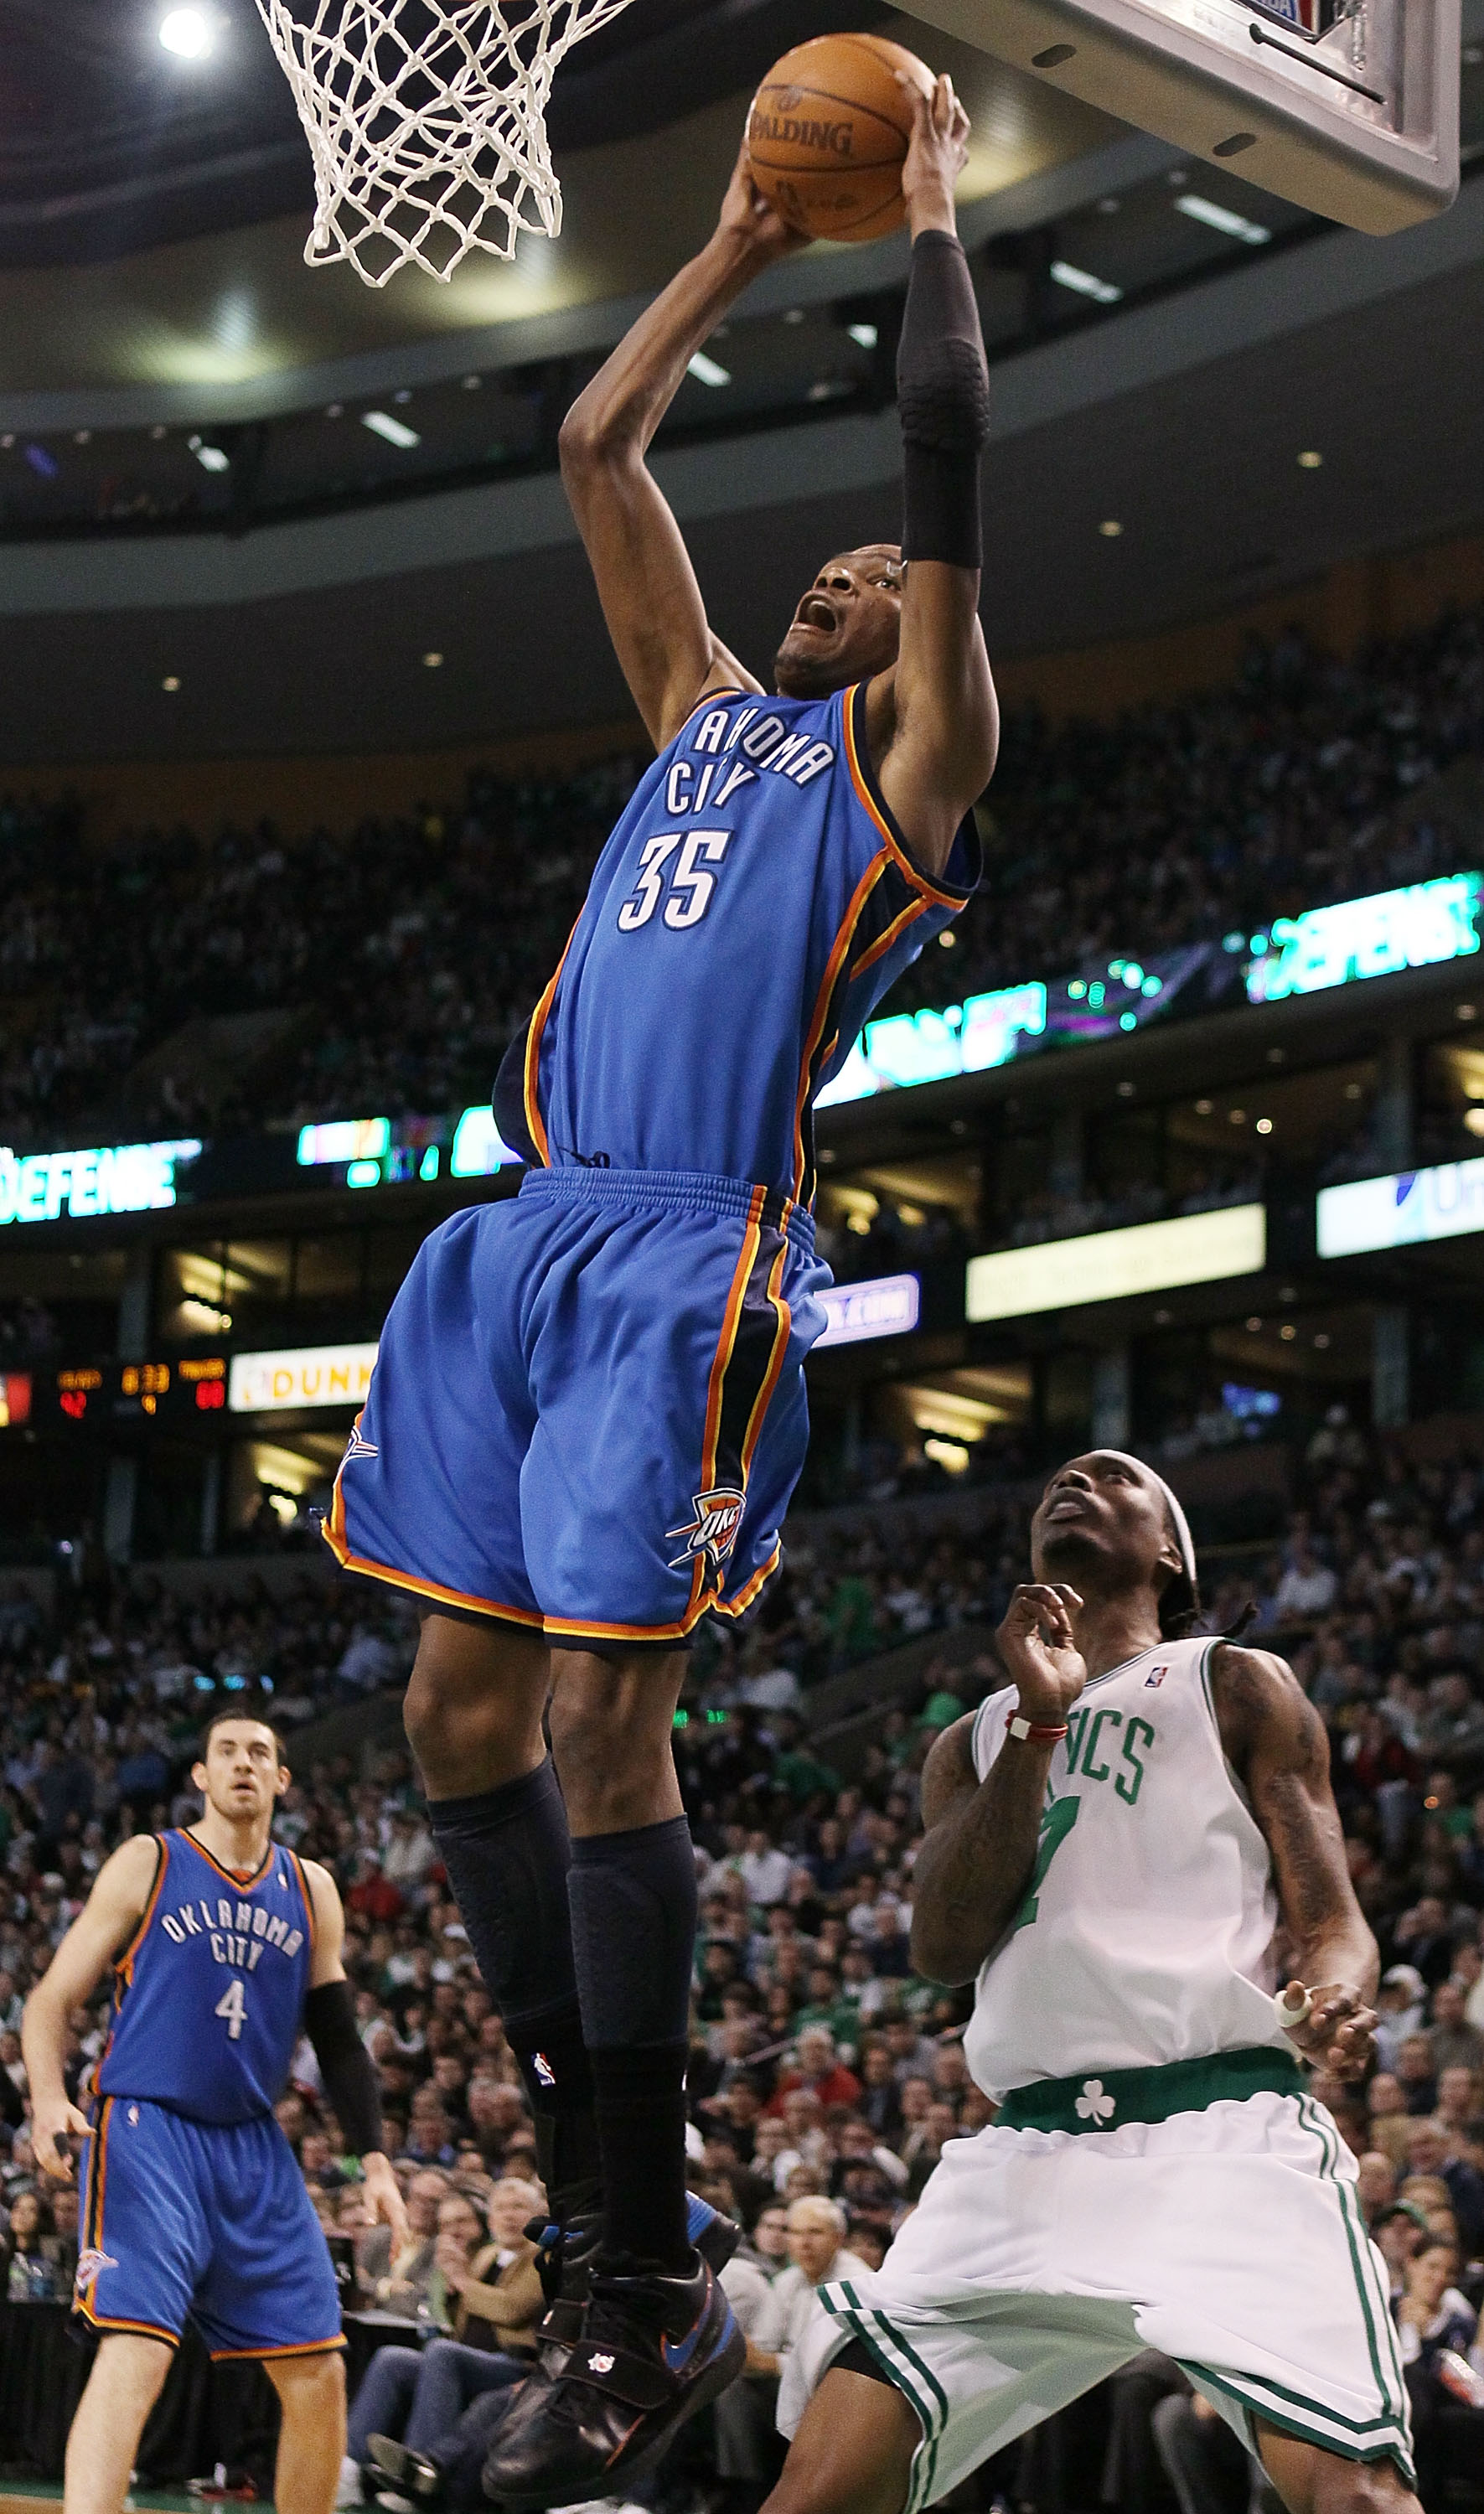 BOSTON - MARCH 31:  Kevin Durant #35 of the Oklahoma City Thunder goes in for the dunk as Marquis Daniels #7 of the Boston Celtics defends on March 31, 2010 at the TD Garden in Boston, Massachusetts. The Oklahoma City Thunder defeated the Boston Celtics 1